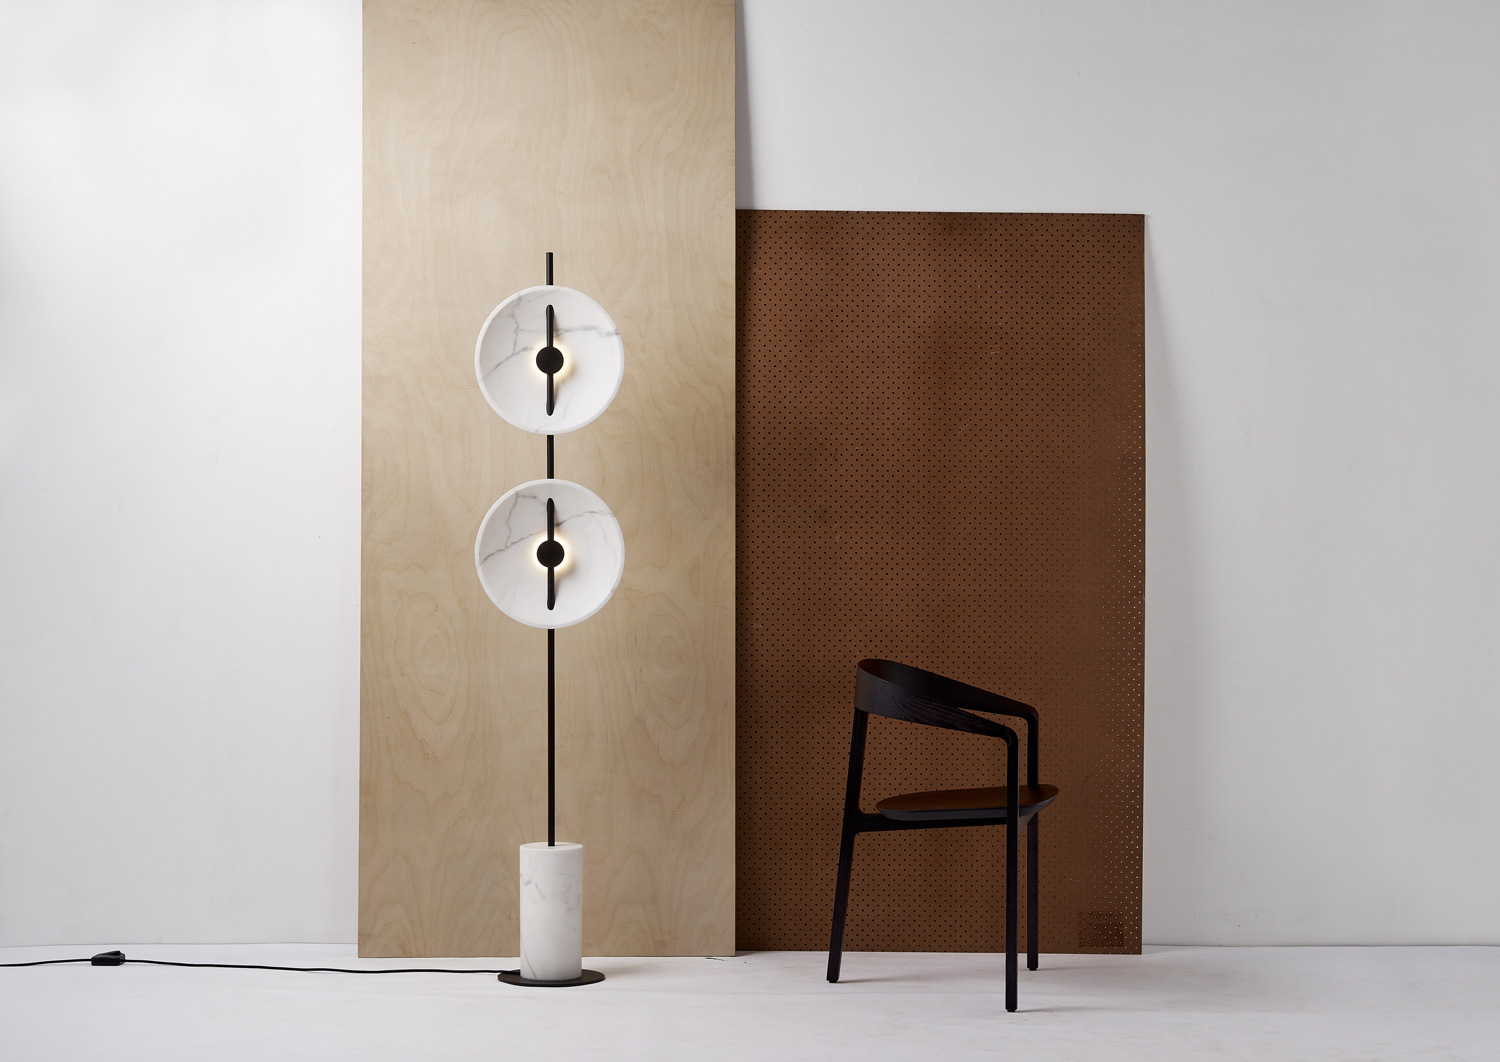 Local Design Mito by Tom Fereday, Australian Designers Milan | Yellowtrace